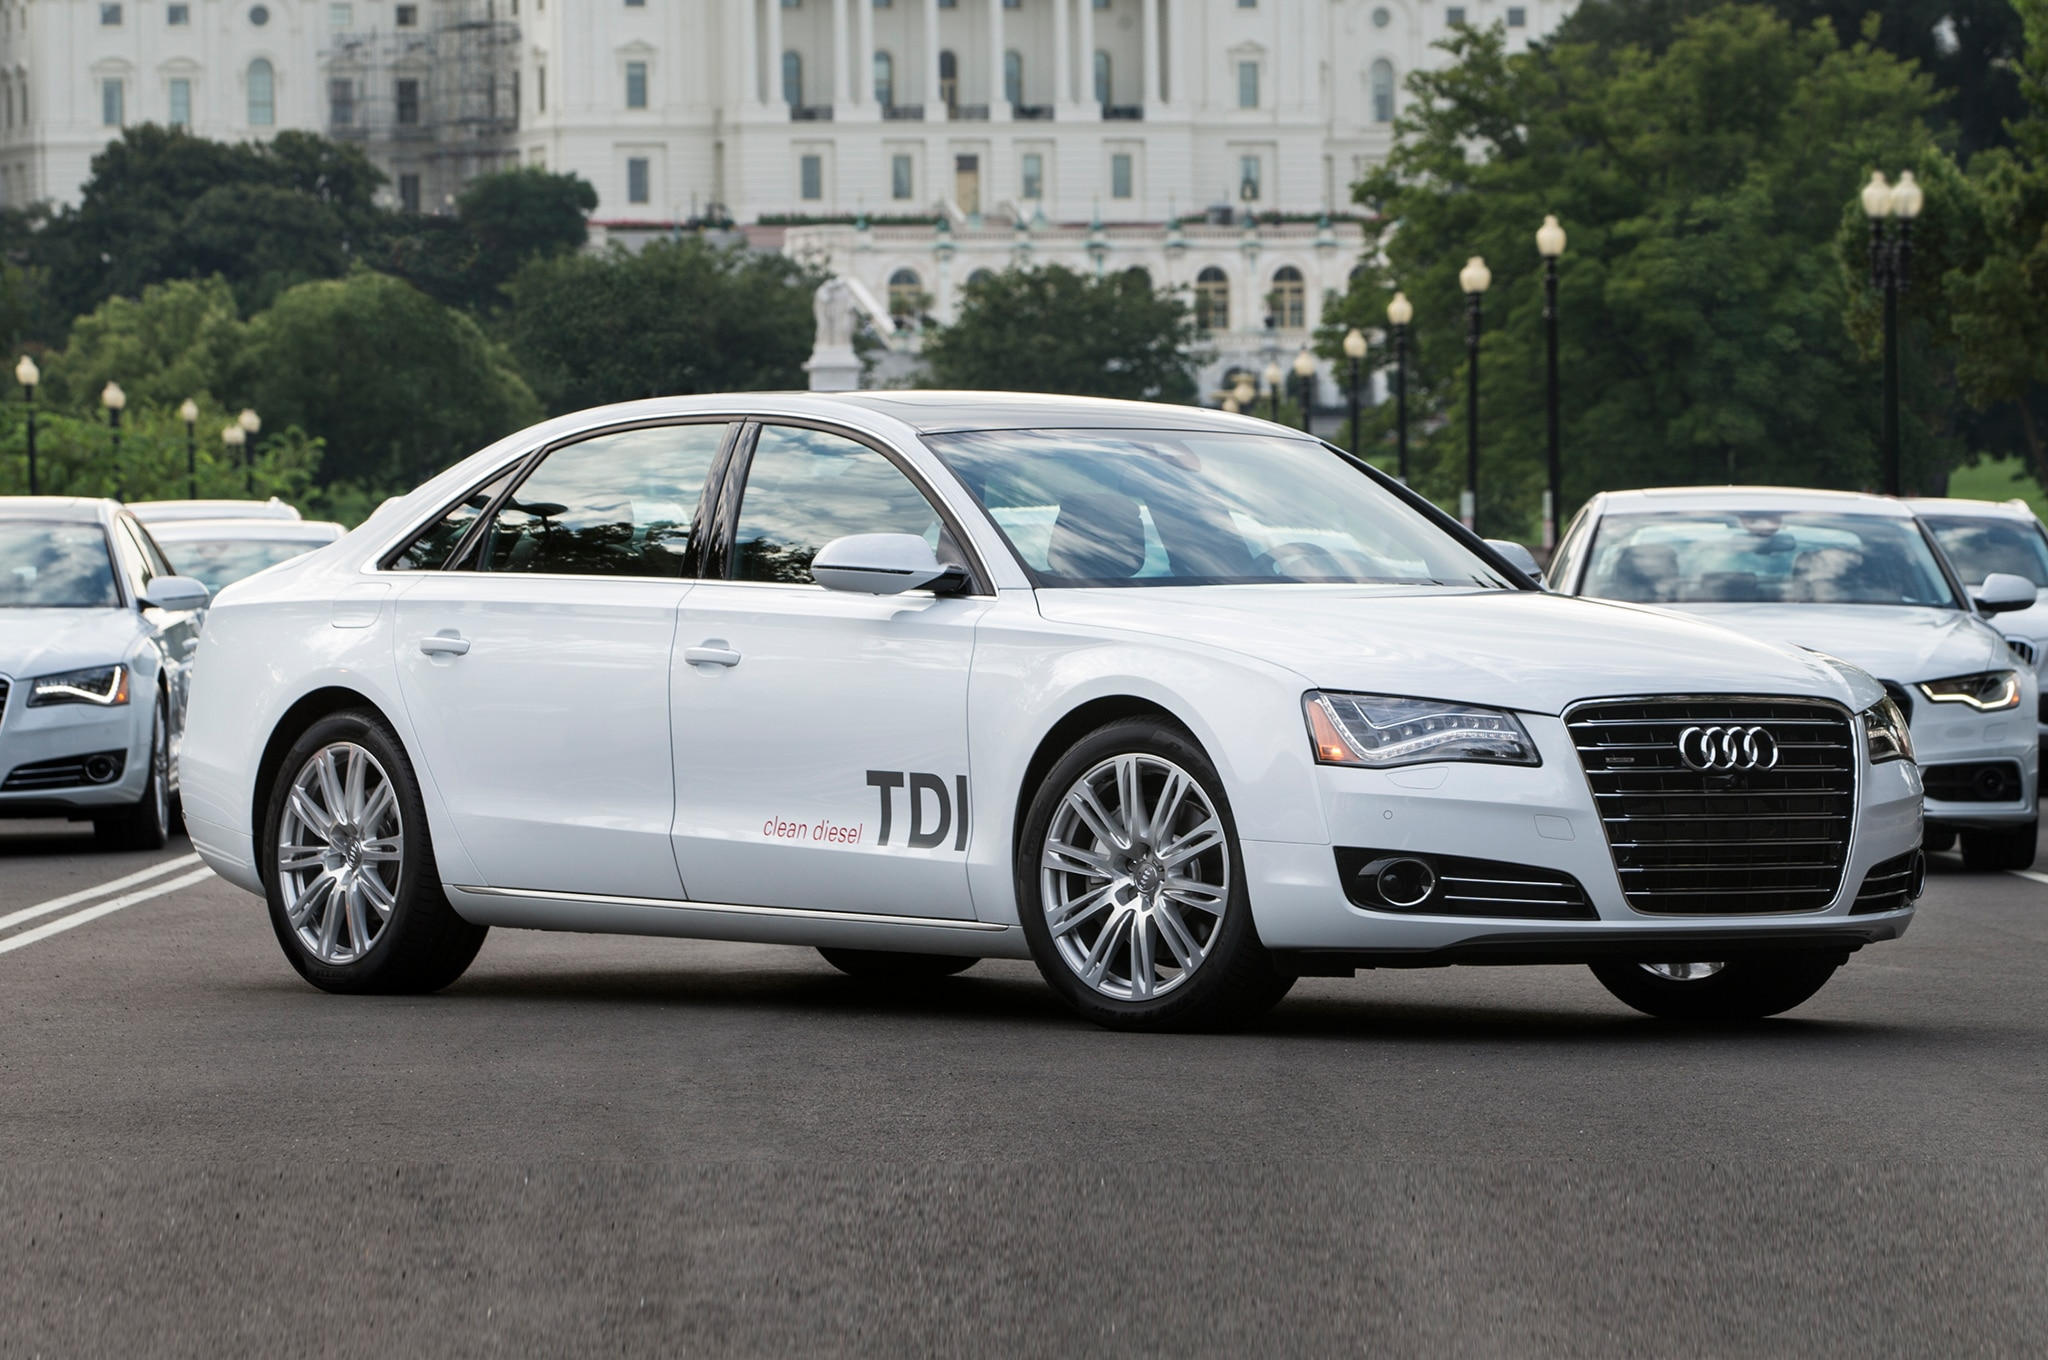 2015 audi a8 debuts this year gain led matrix headlights. Black Bedroom Furniture Sets. Home Design Ideas